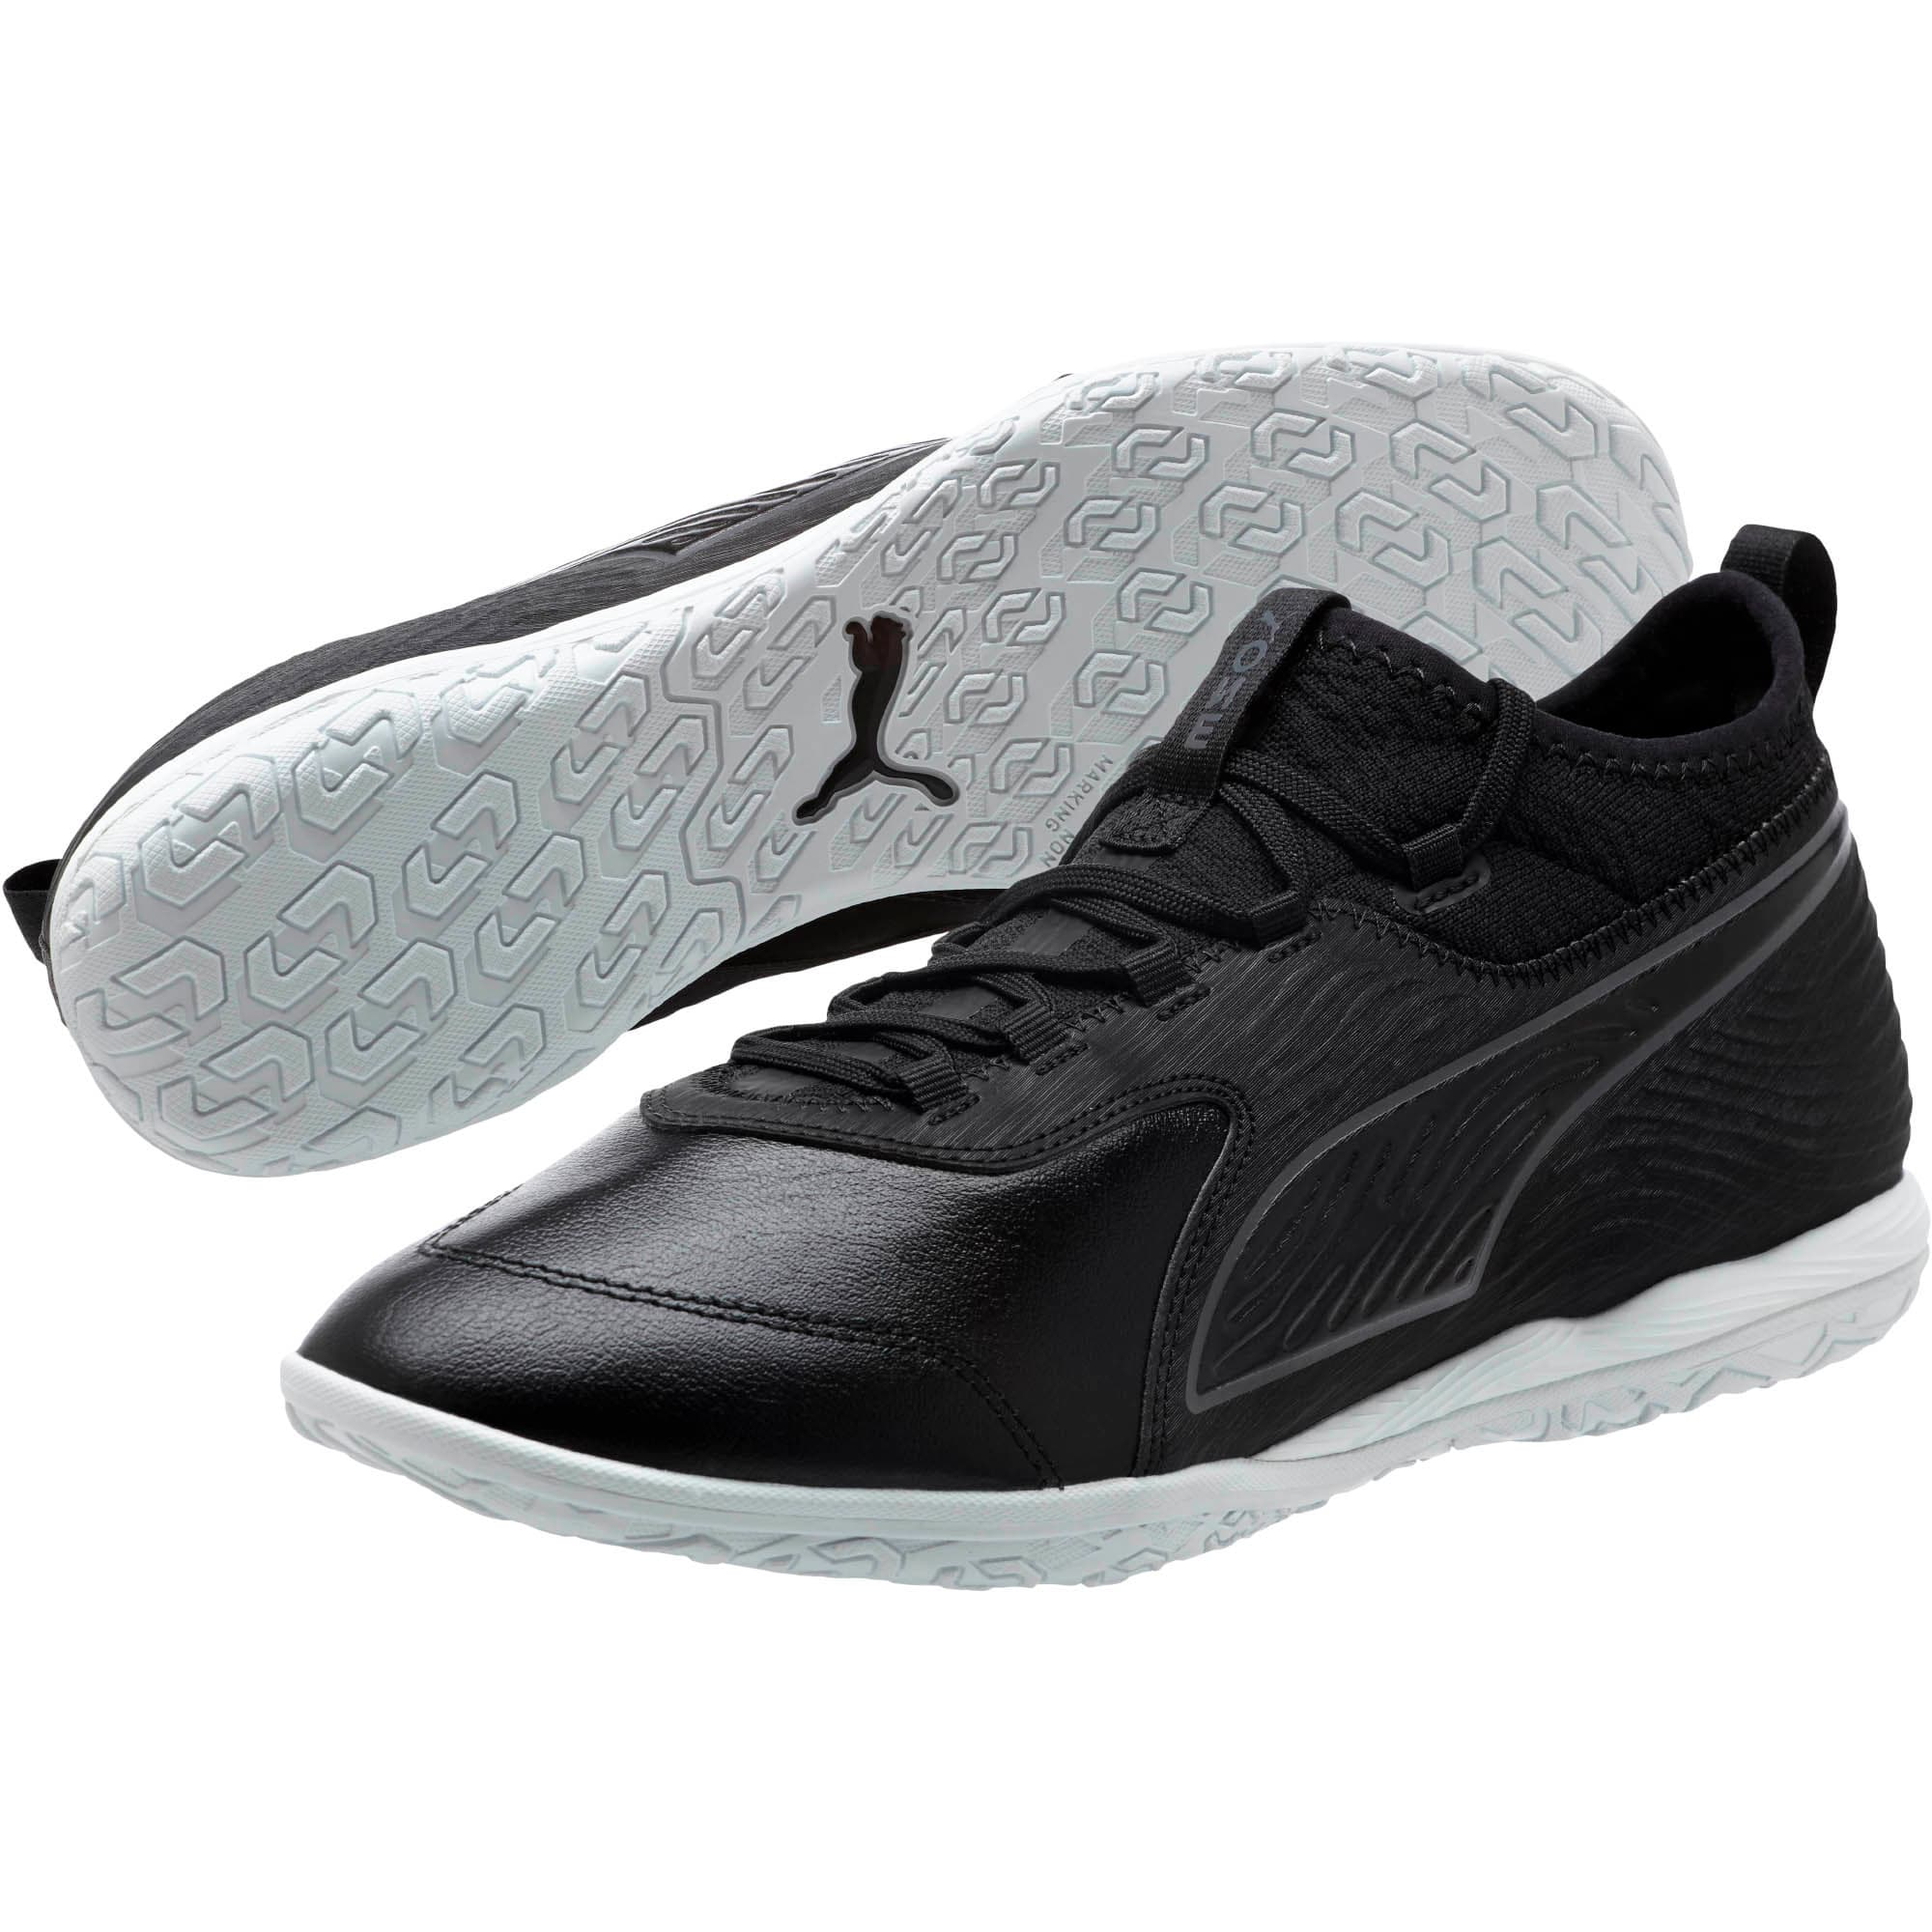 Thumbnail 2 of PUMA ONE 19.3 IT Men's Soccer Shoes, Puma Black-Puma Black-White, medium